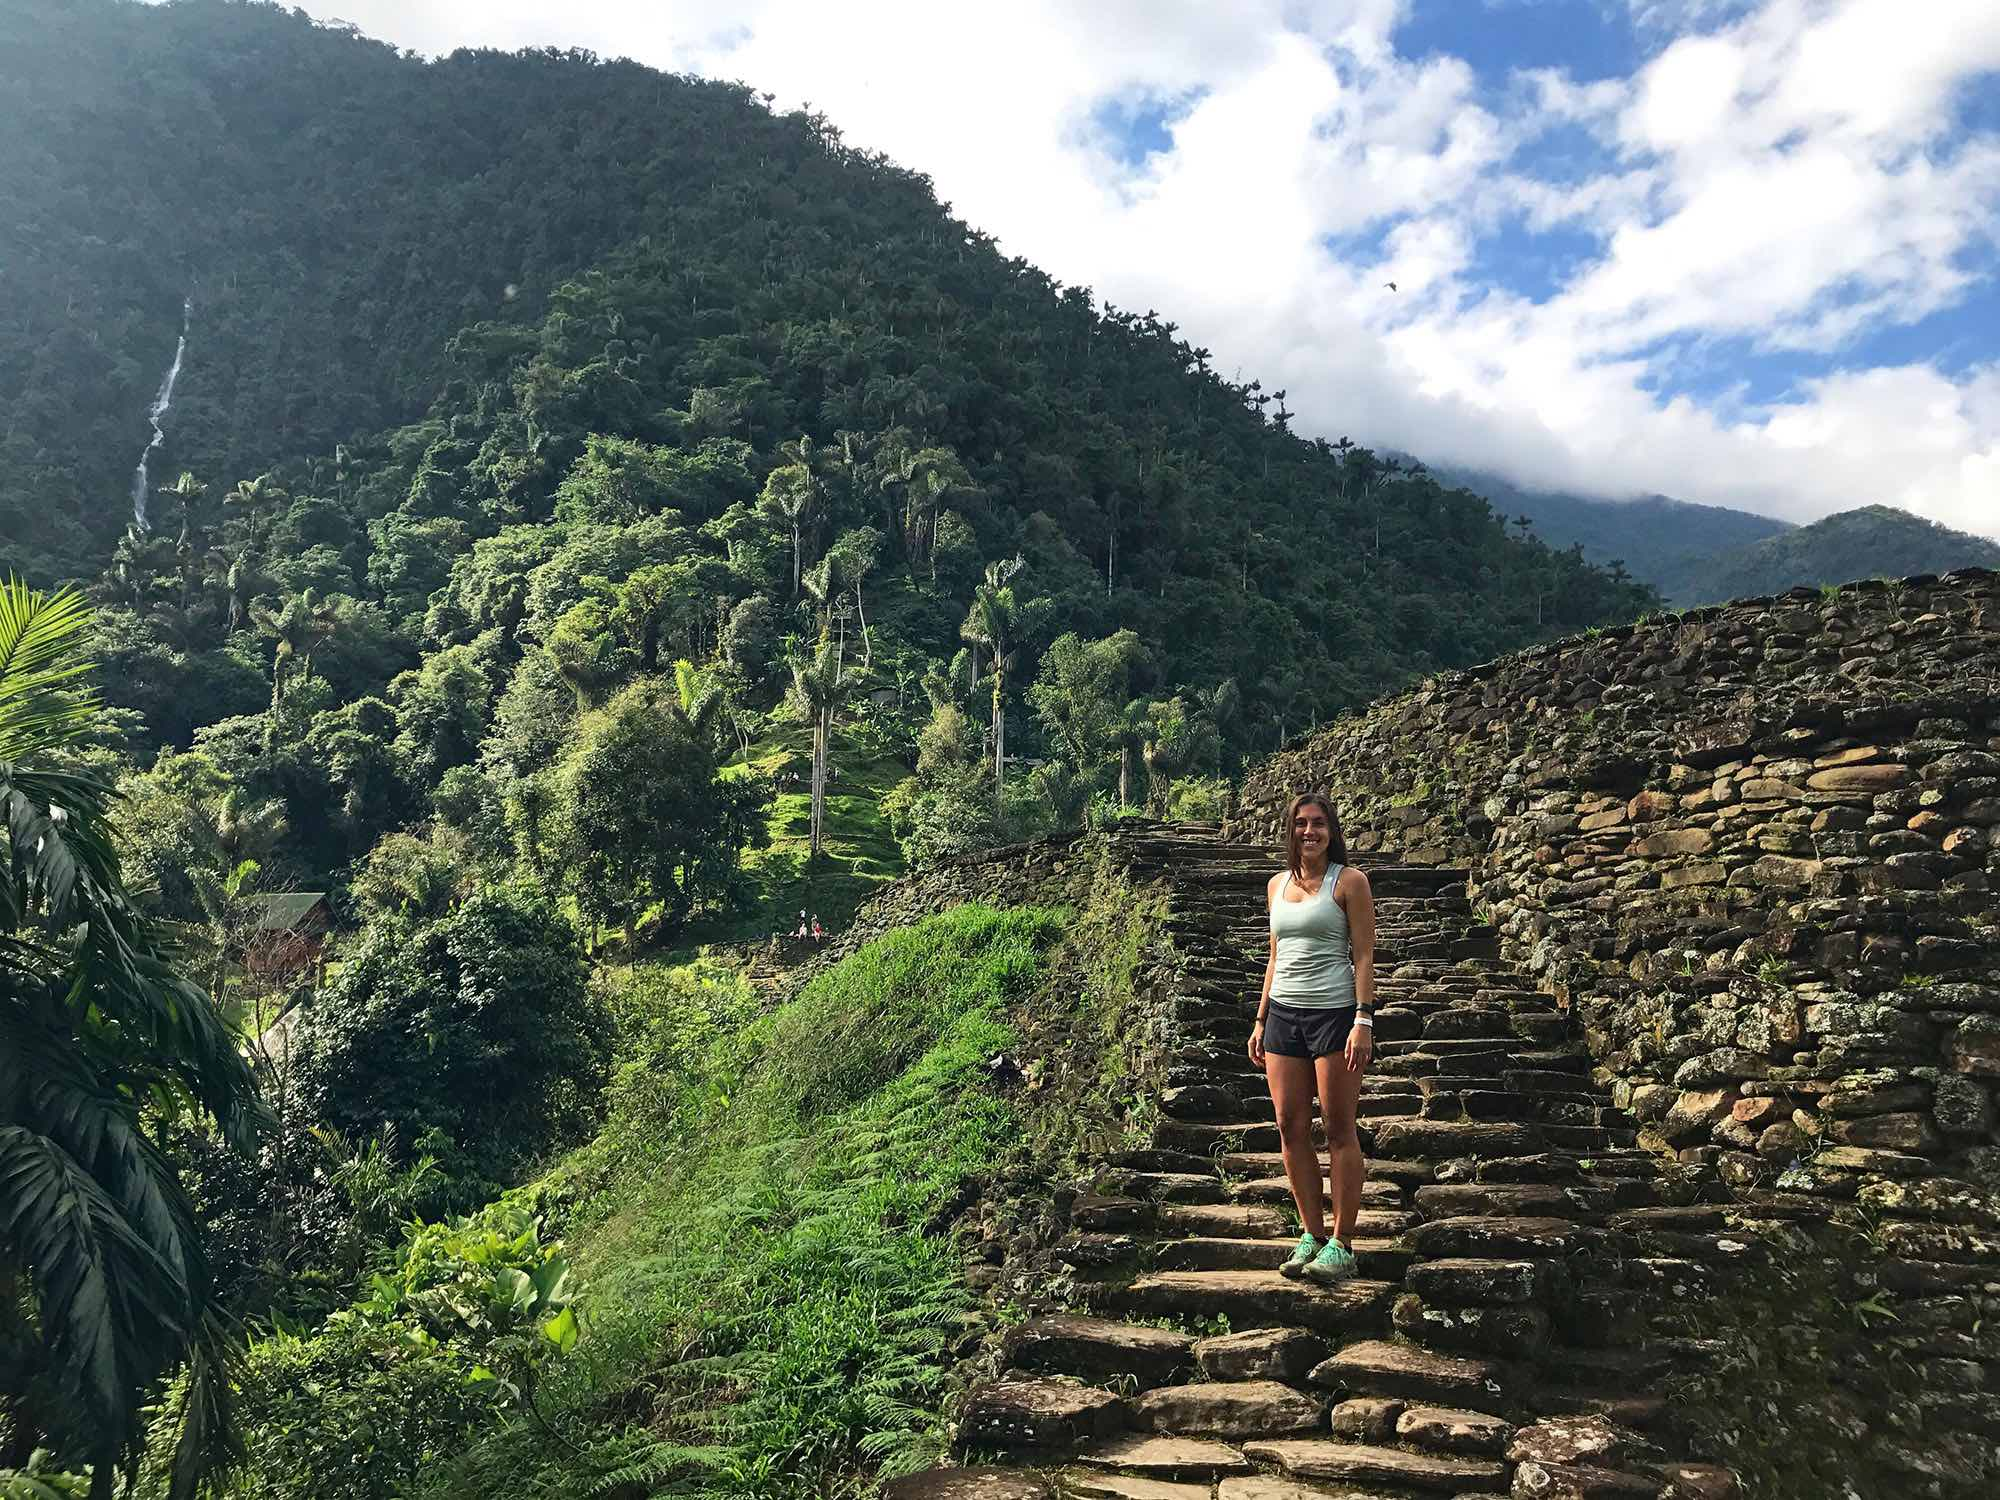 Lost-City-Colombia-site-Steph.jpg